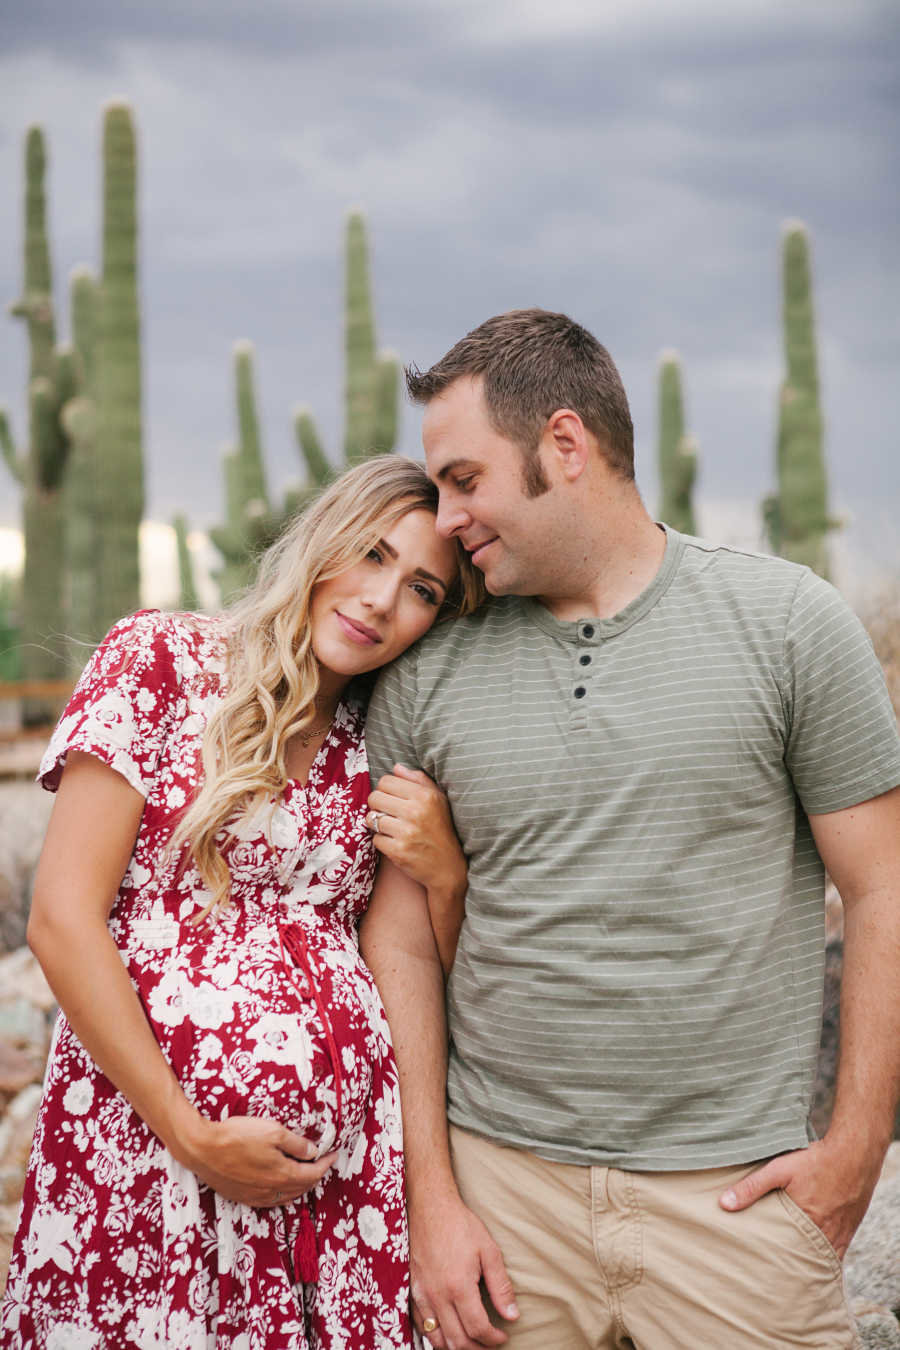 husband looking tenderly at pregnant wife in desert maternity photo shoot